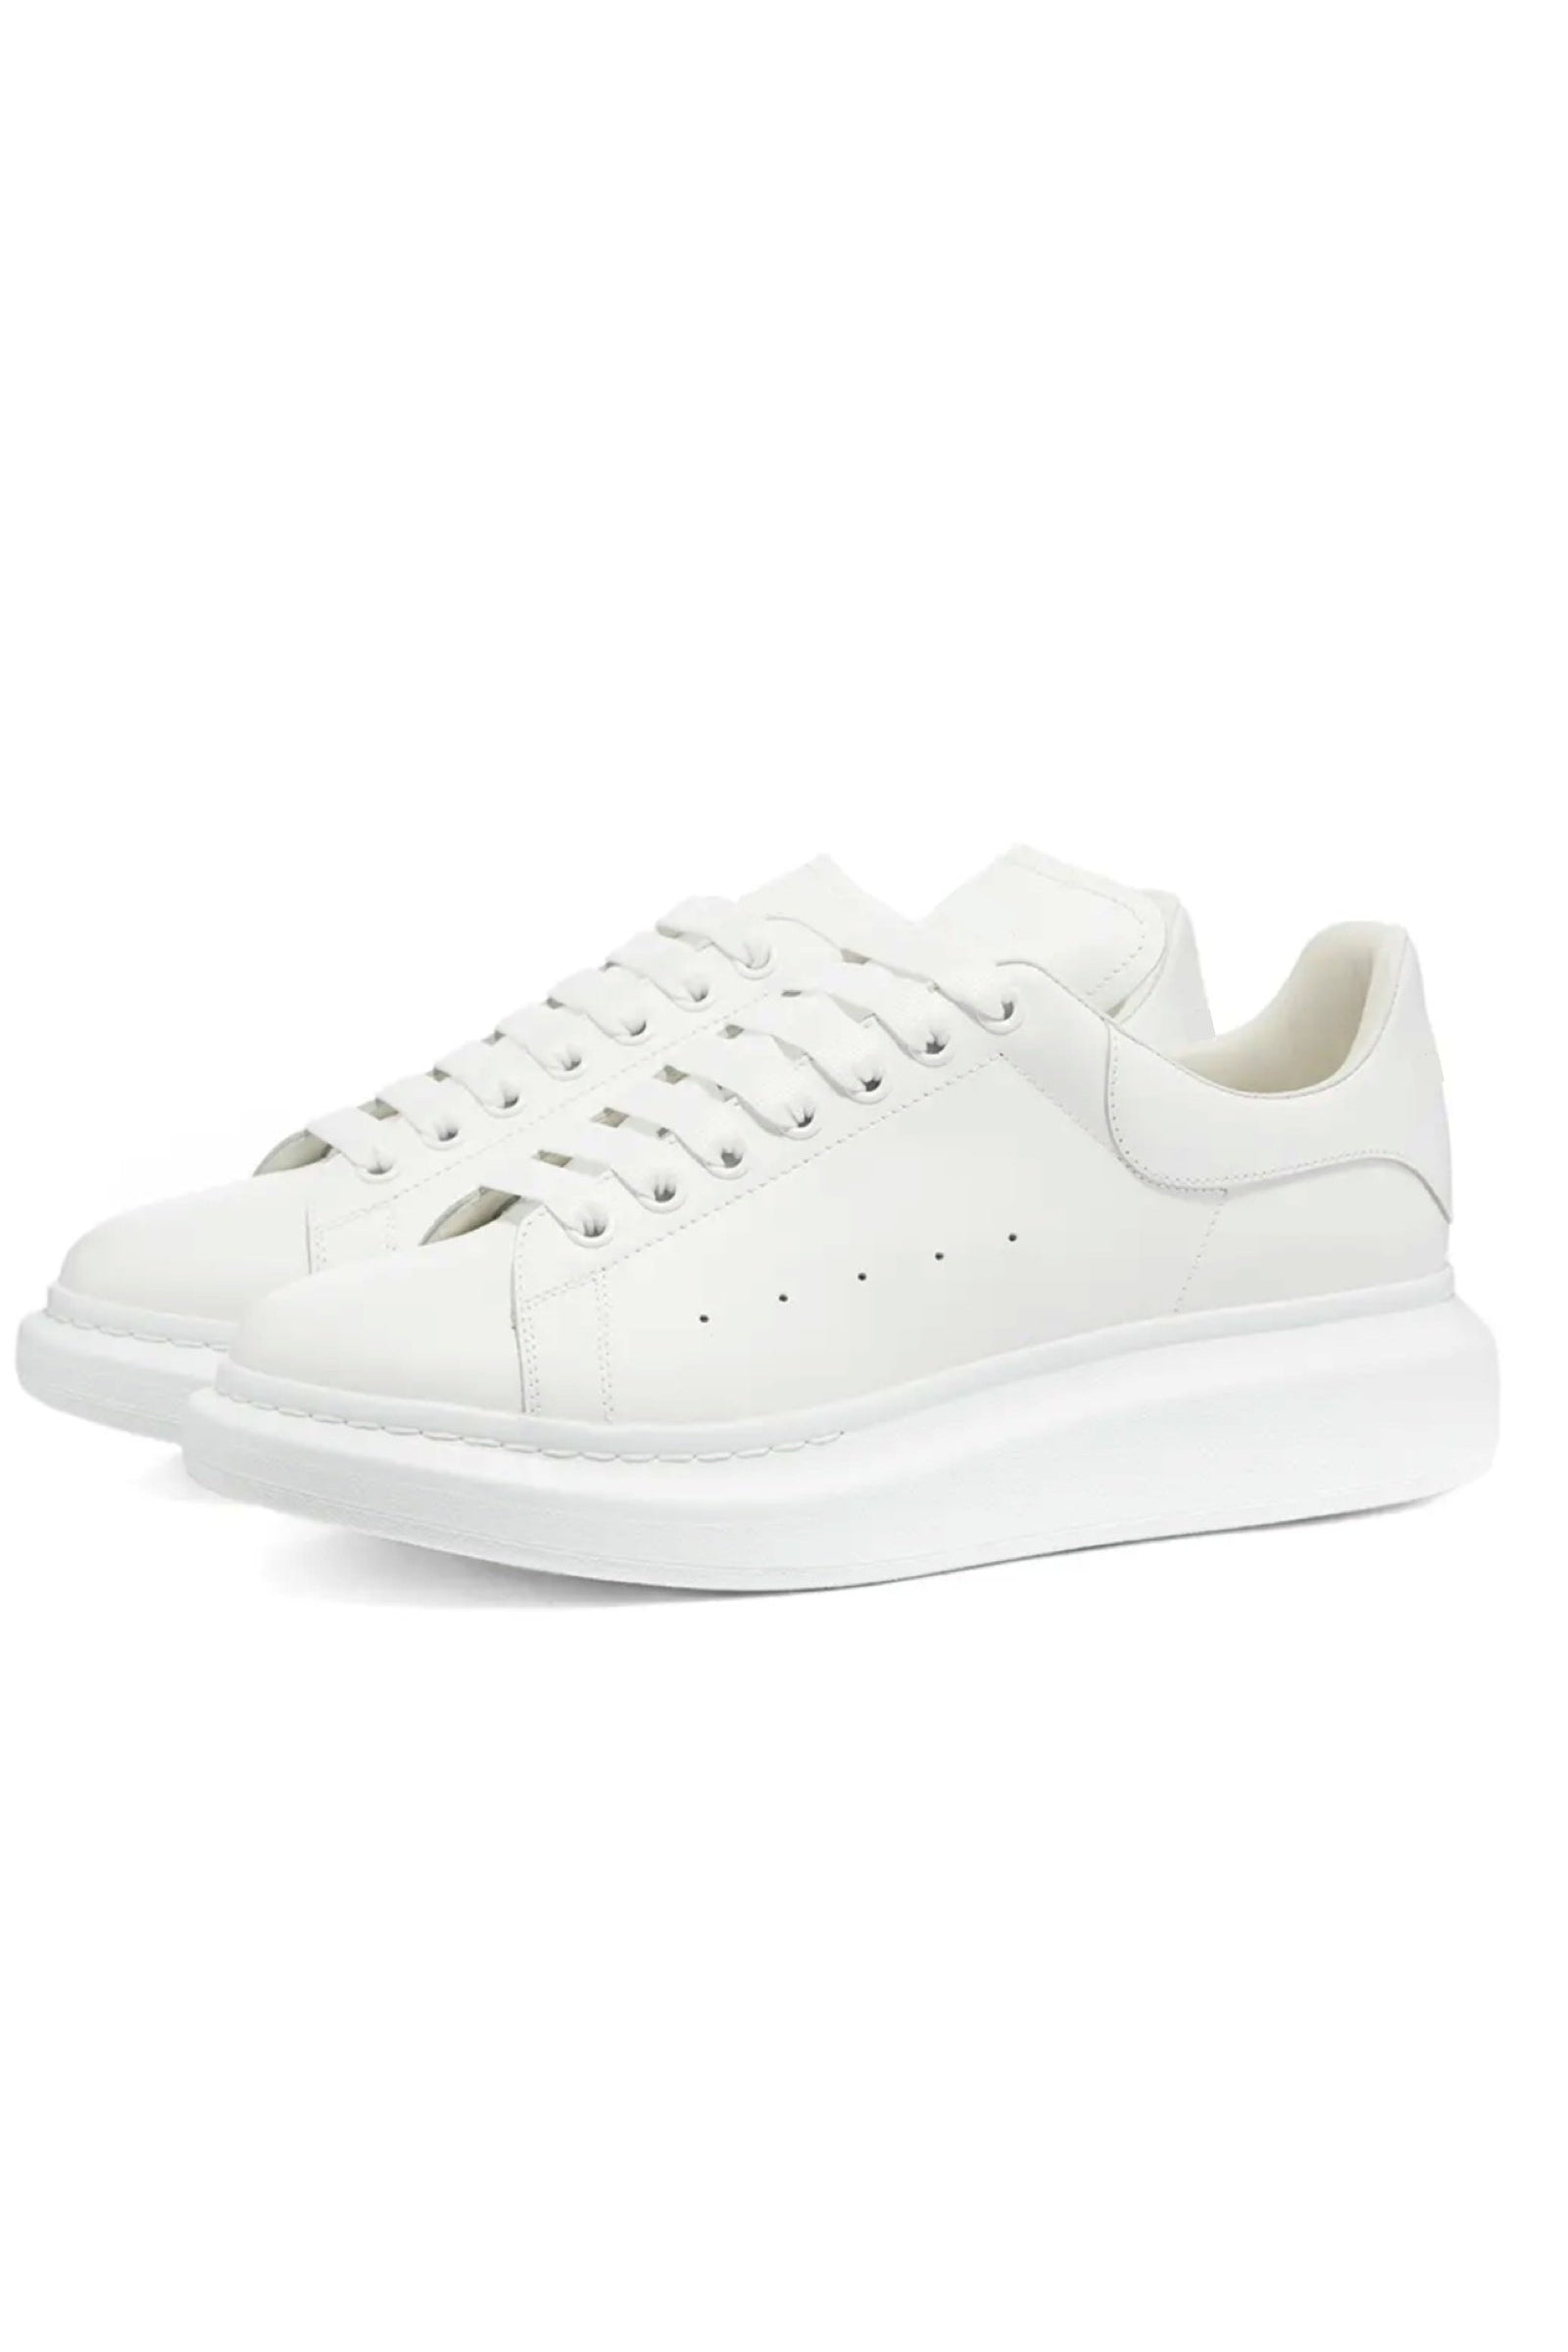 Footwear - Thick Sole Trainers White/ White